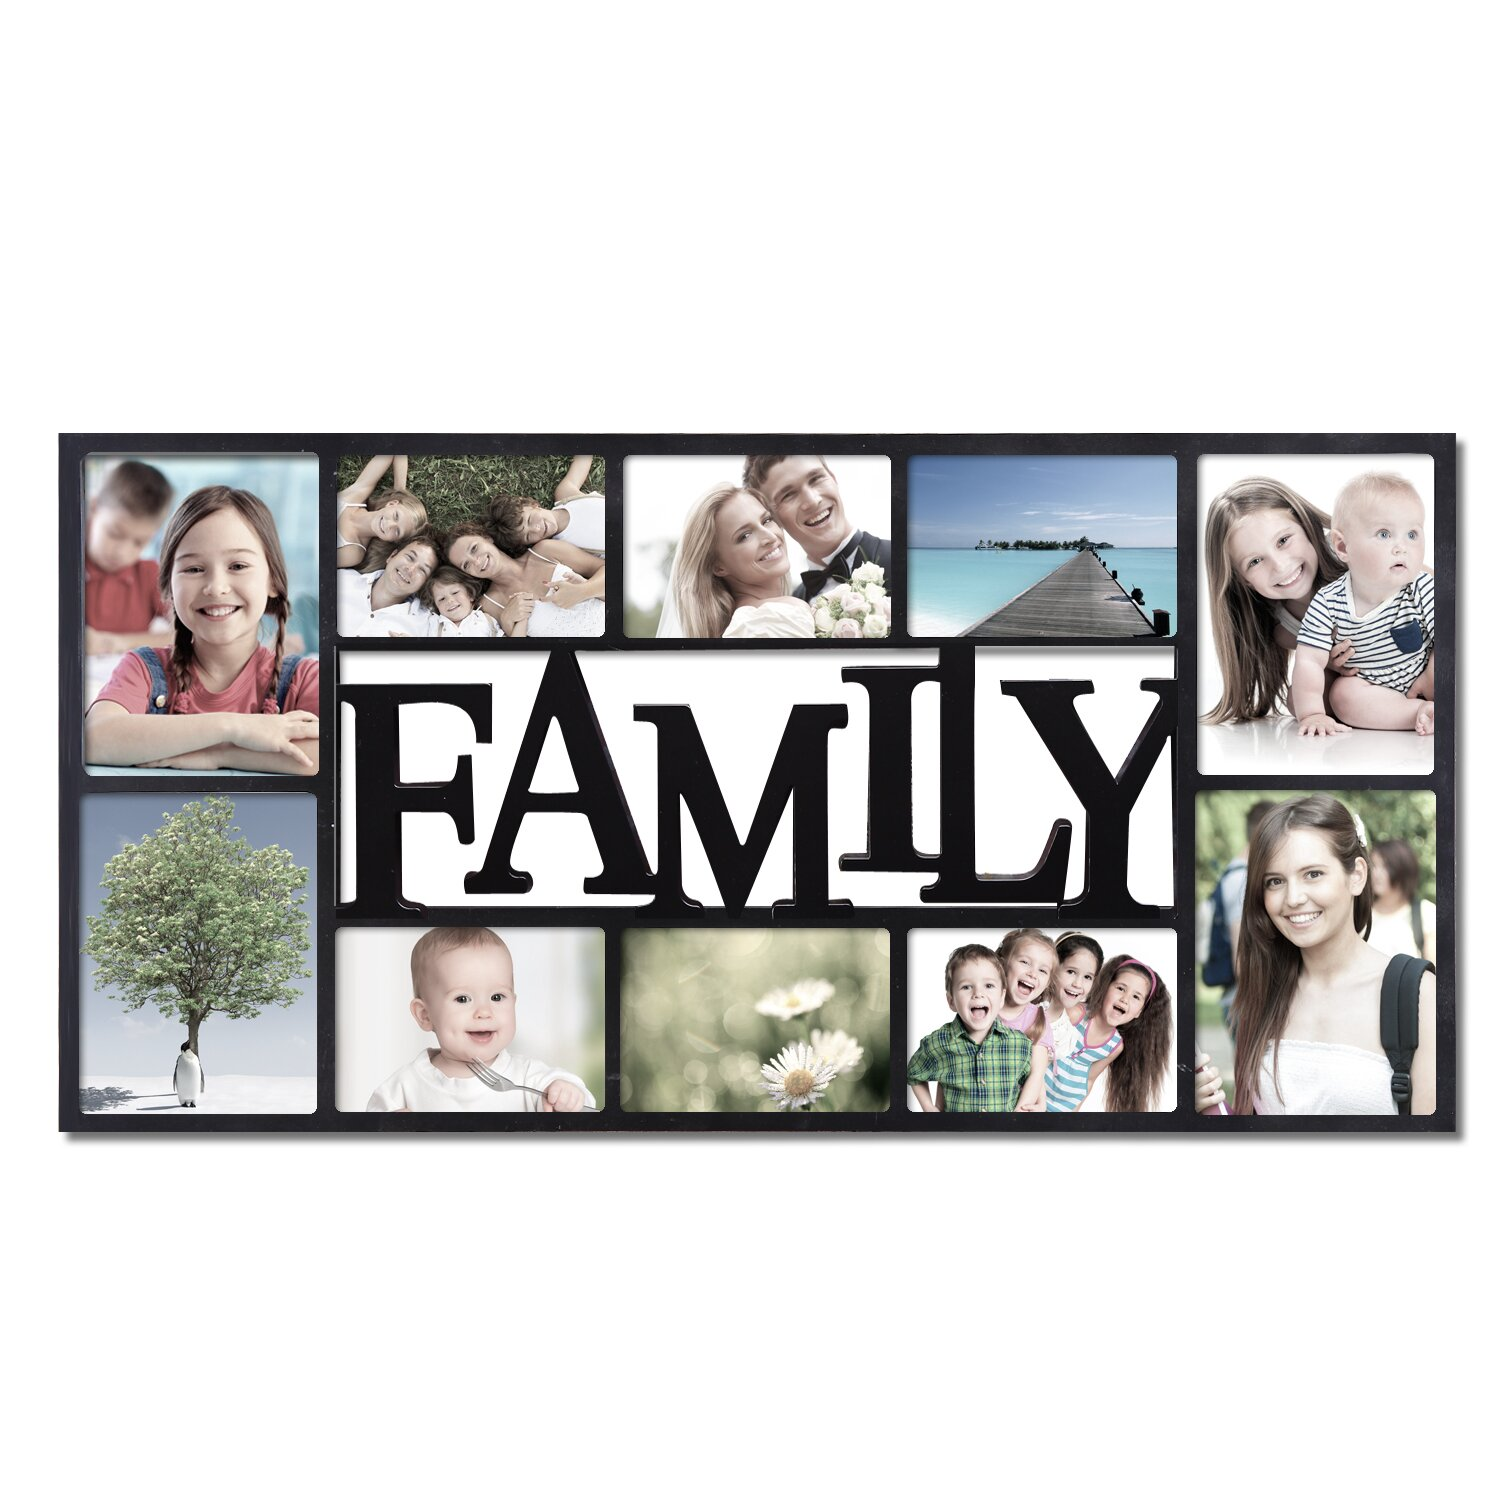 Adecotrading 10 Opening Decorative Family Wall Hanging